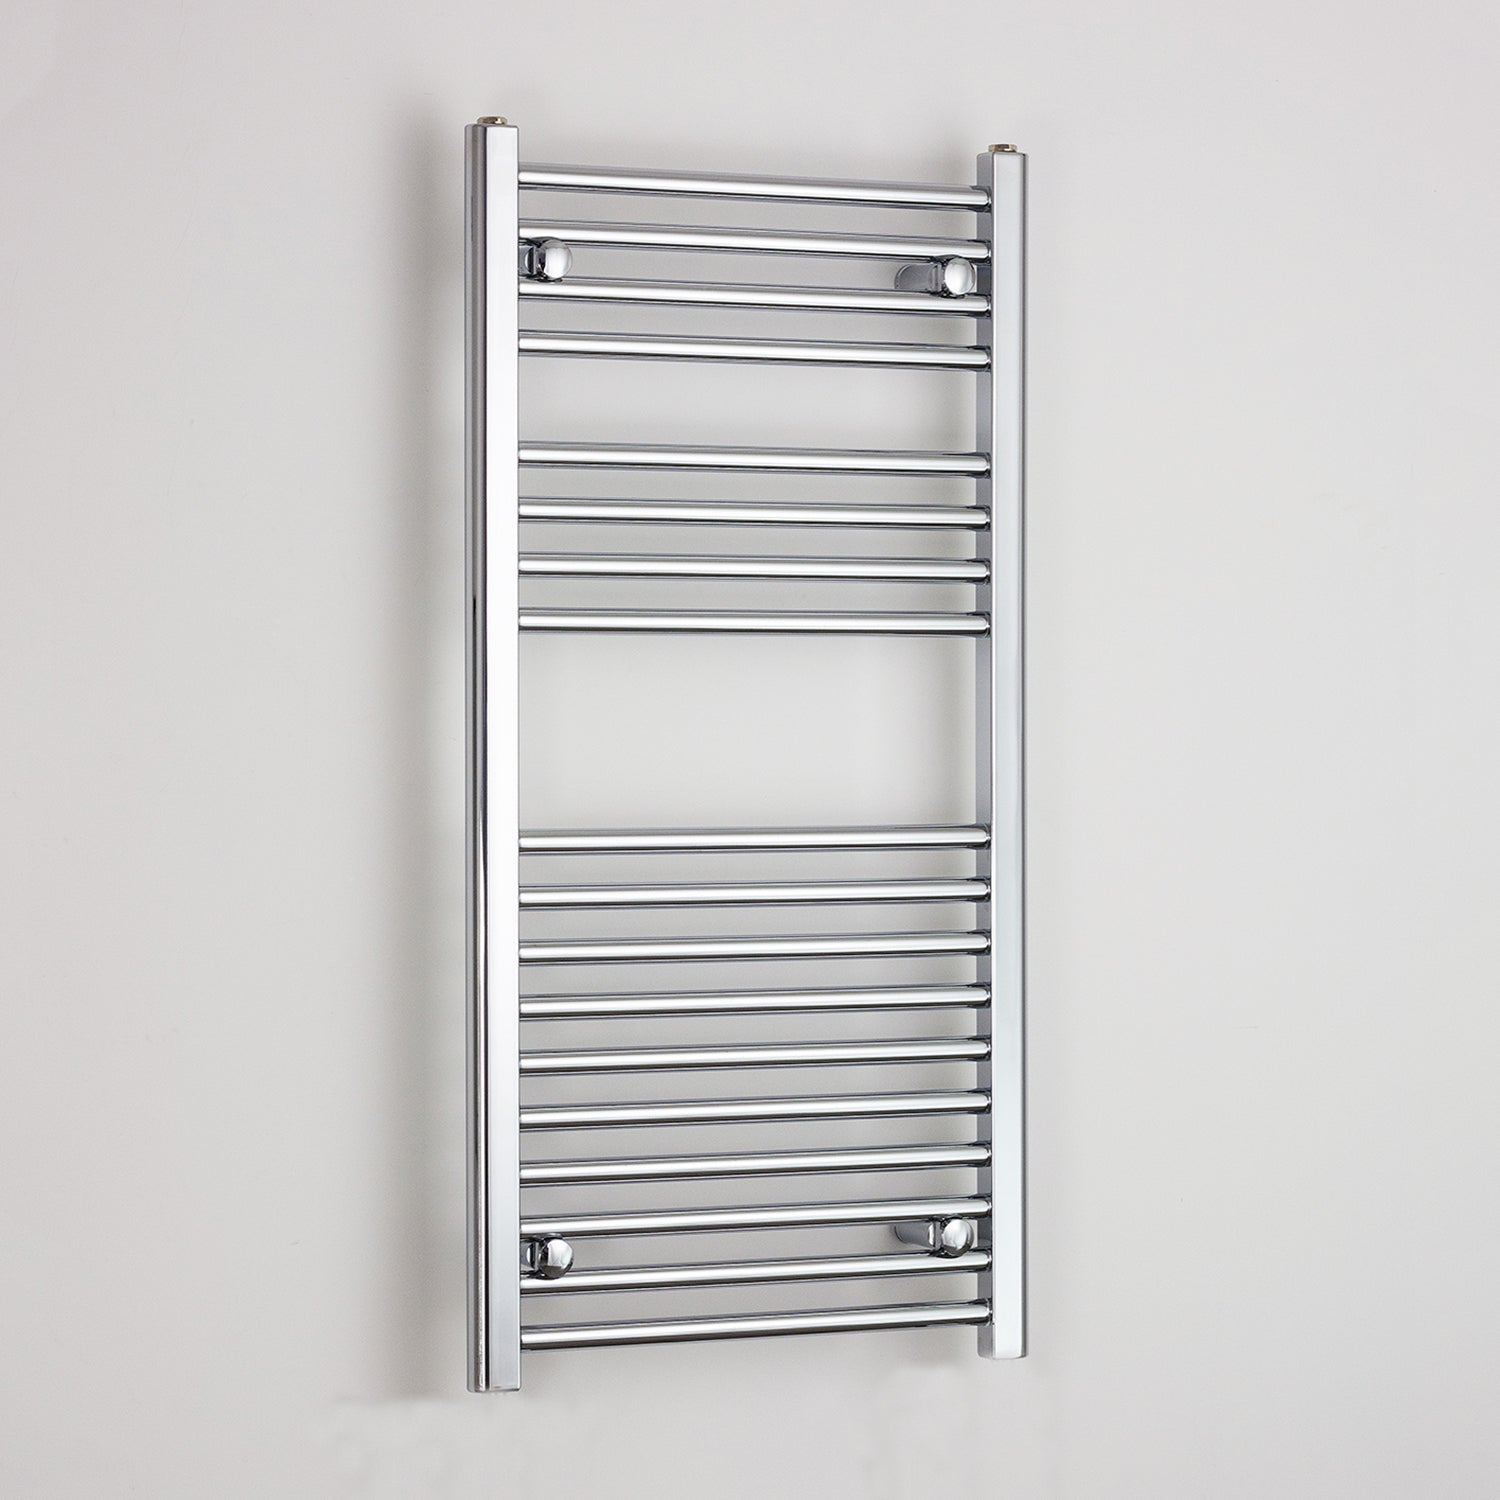 400mm Wide 1000mm High Flat Chrome Heated Towel Rail Radiator HTR,Towel Rail Only